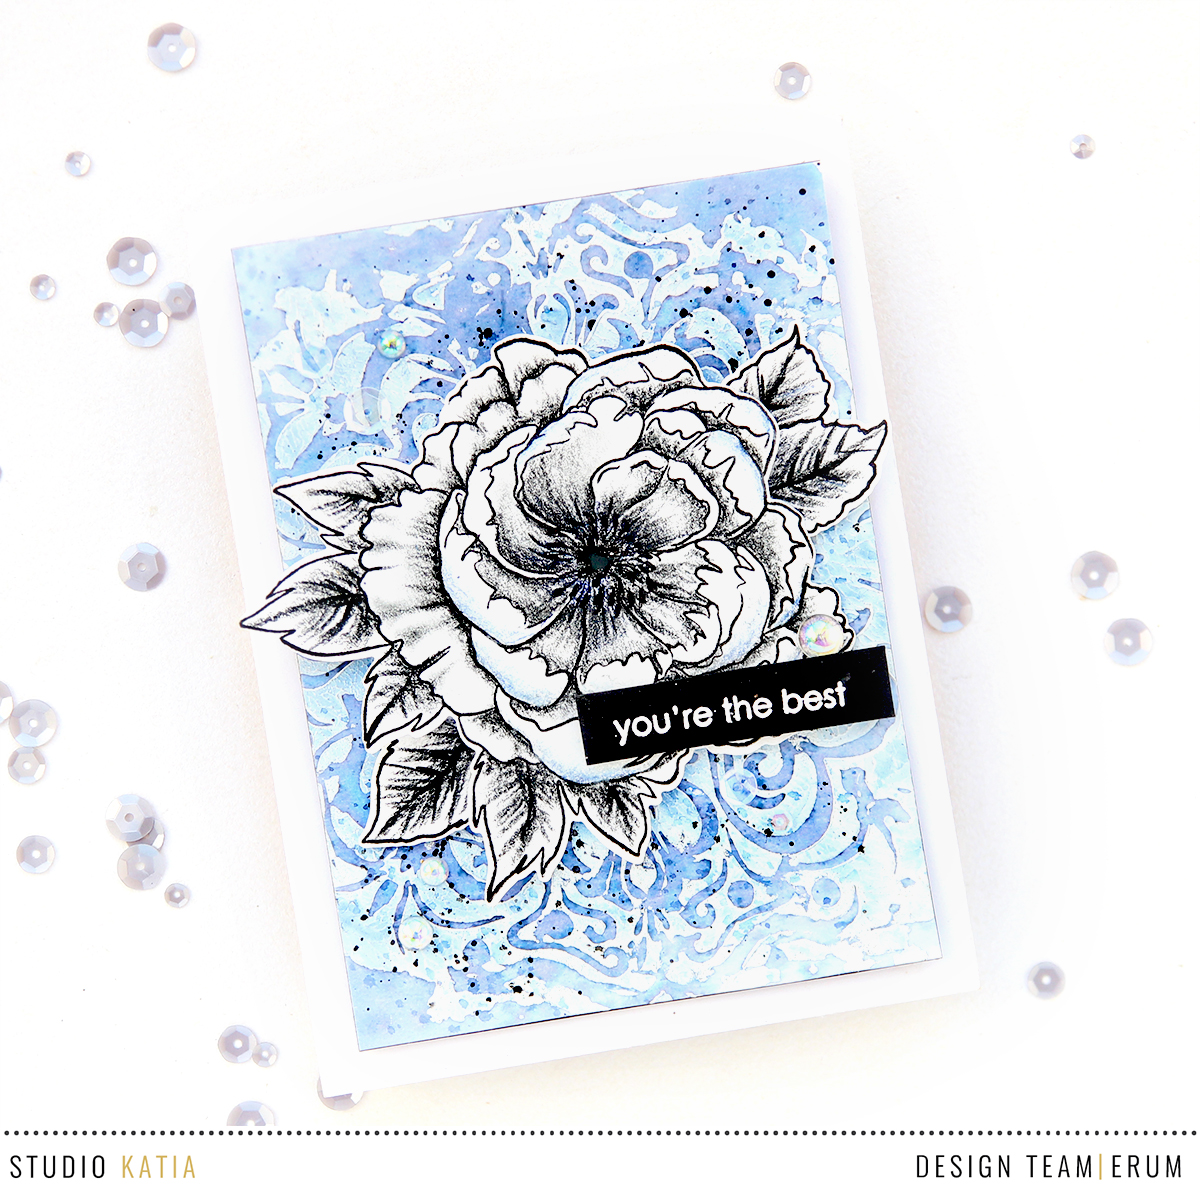 Studio Katiia Japanese Peony pecil shaded + Mandala Stencil background | Erum Tasneem | @pr0digy0